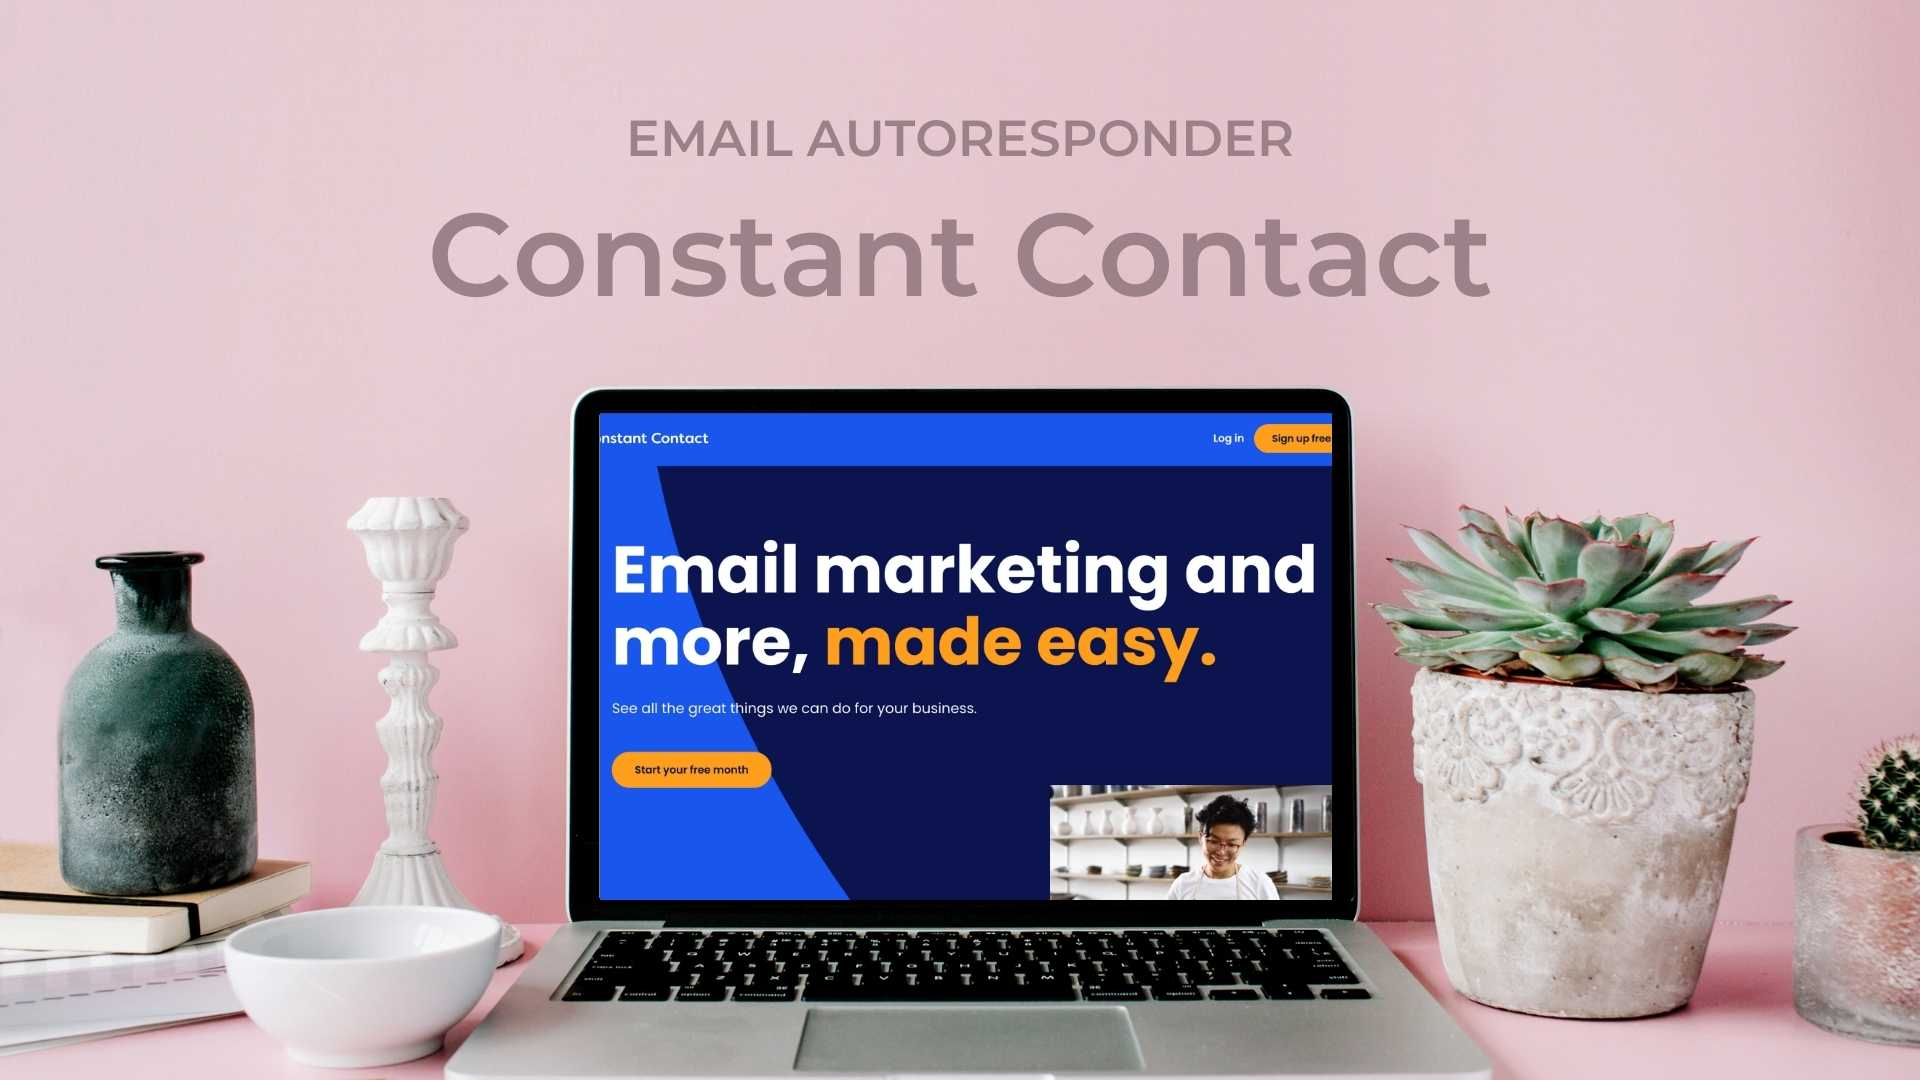 Constant Contact Review Is this Email Autoresponder worth it? Features, Pro's & Con's